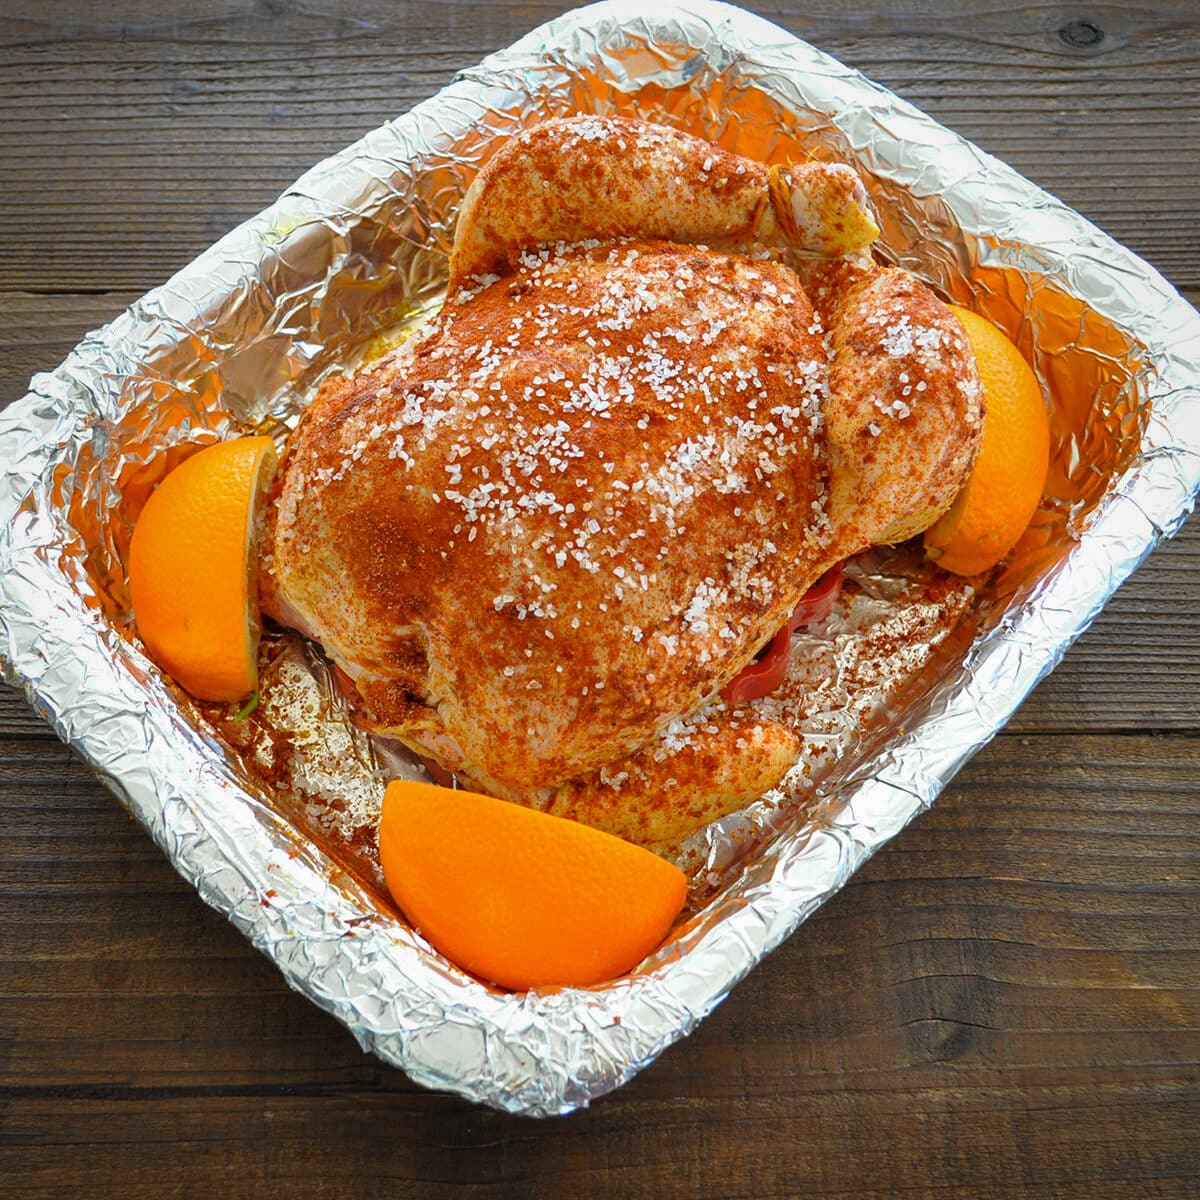 raw chicken in a baking dish with oranges